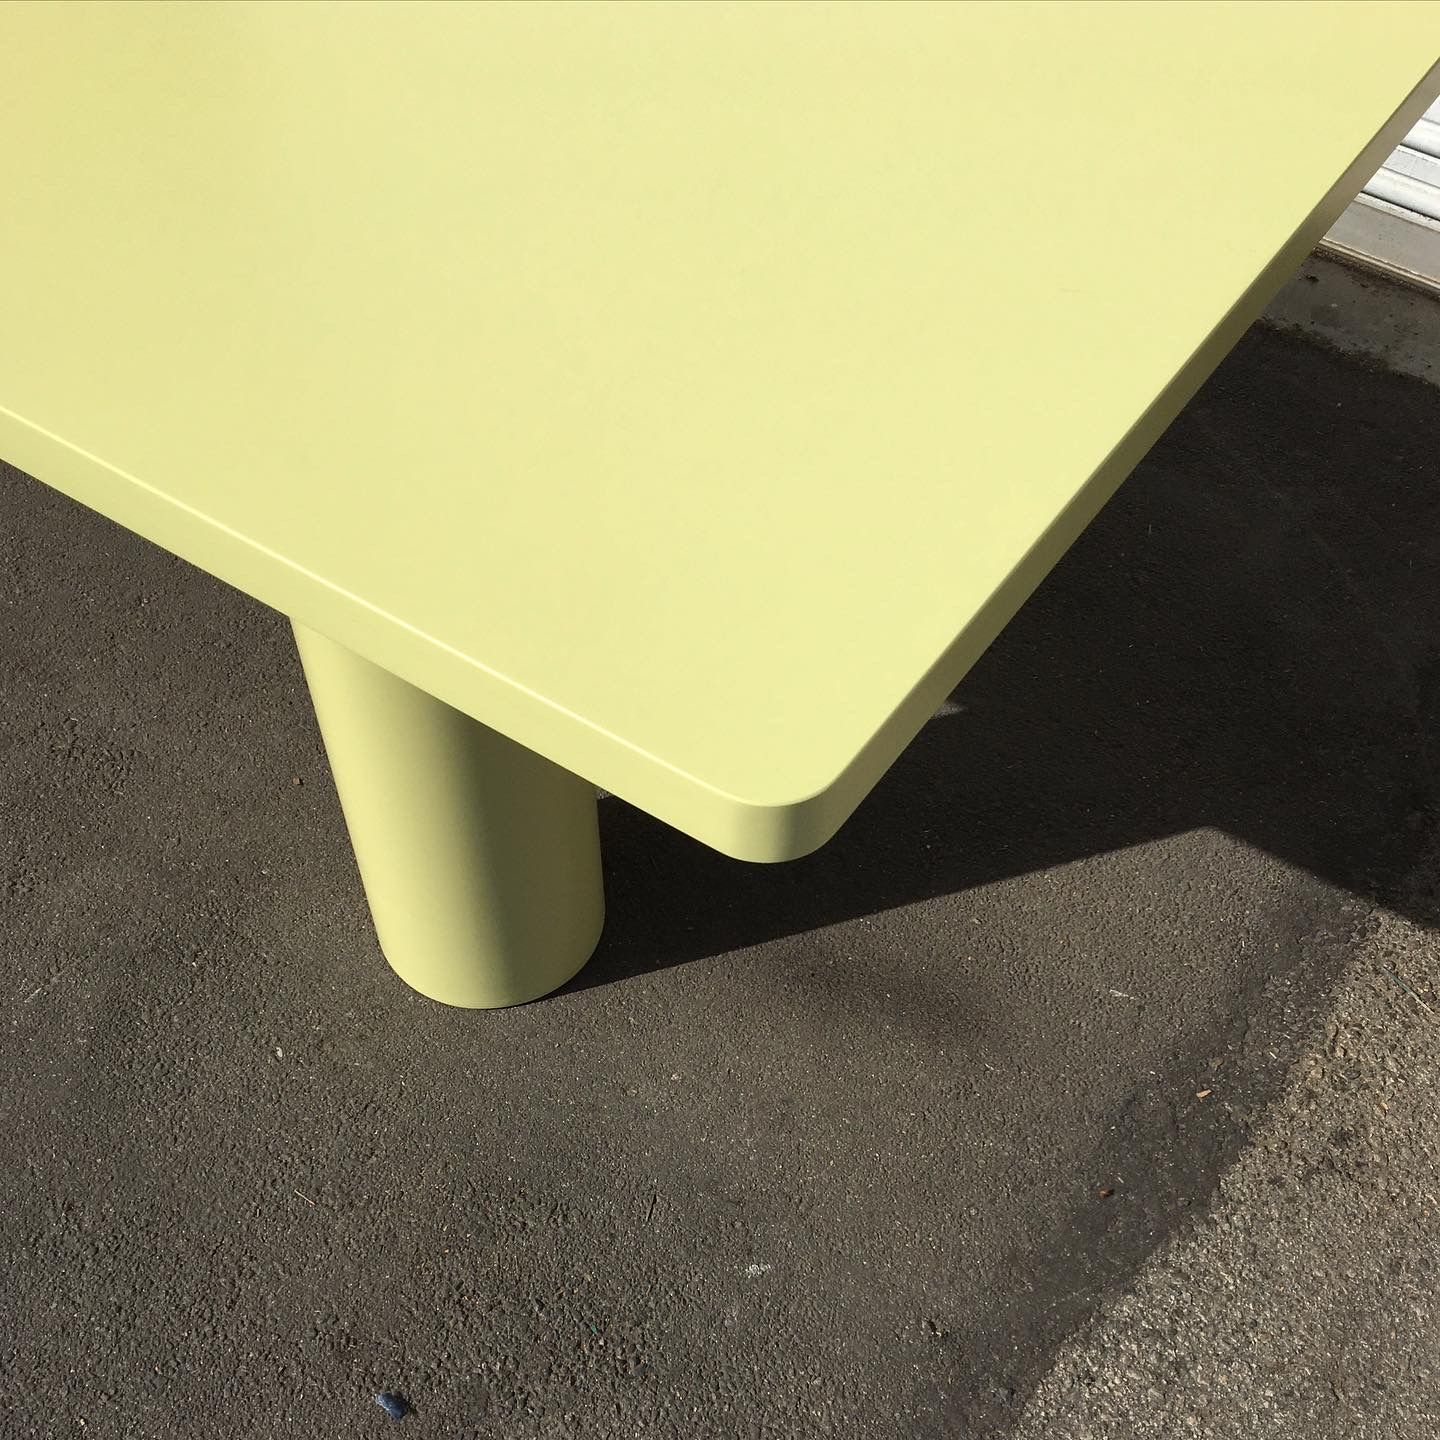 Four Cylinder Display Table product image 3